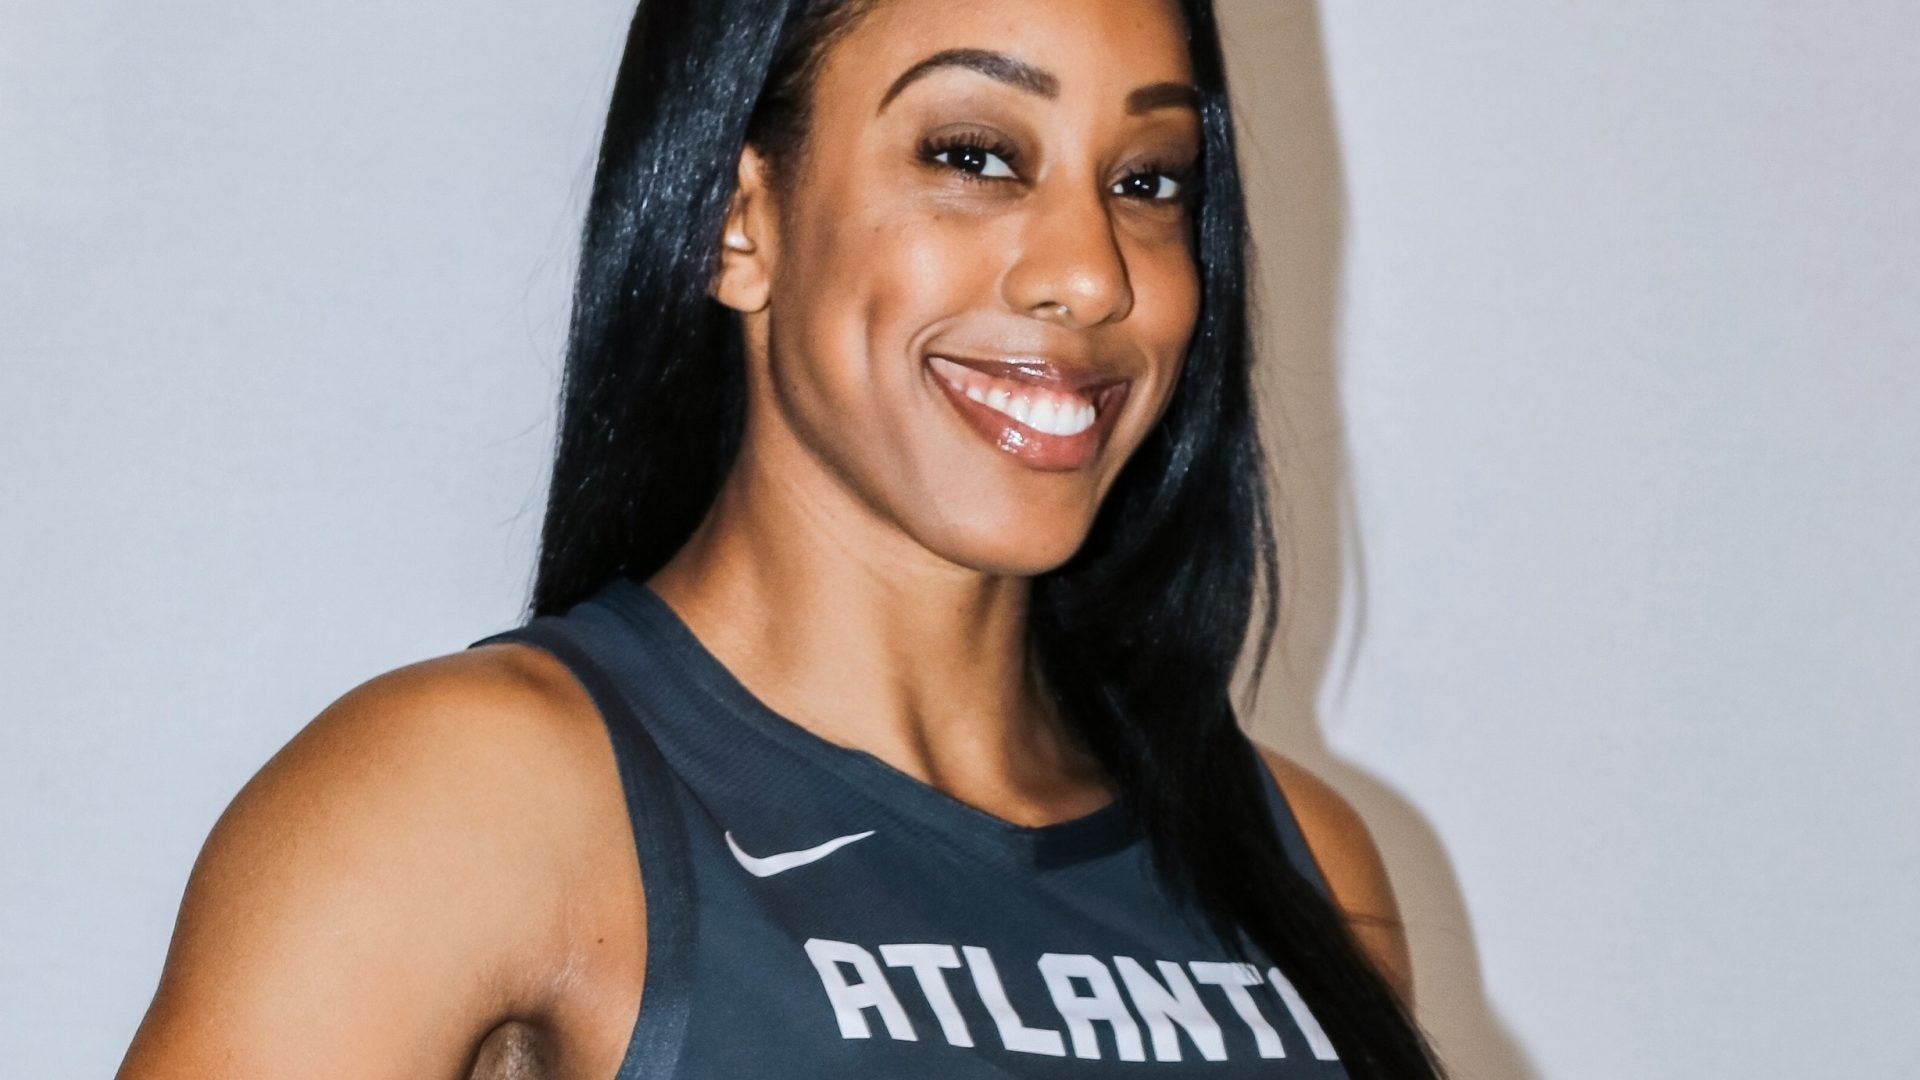 She Got Game: WNBA Star Monique Billings On Faith, Focus And The Future